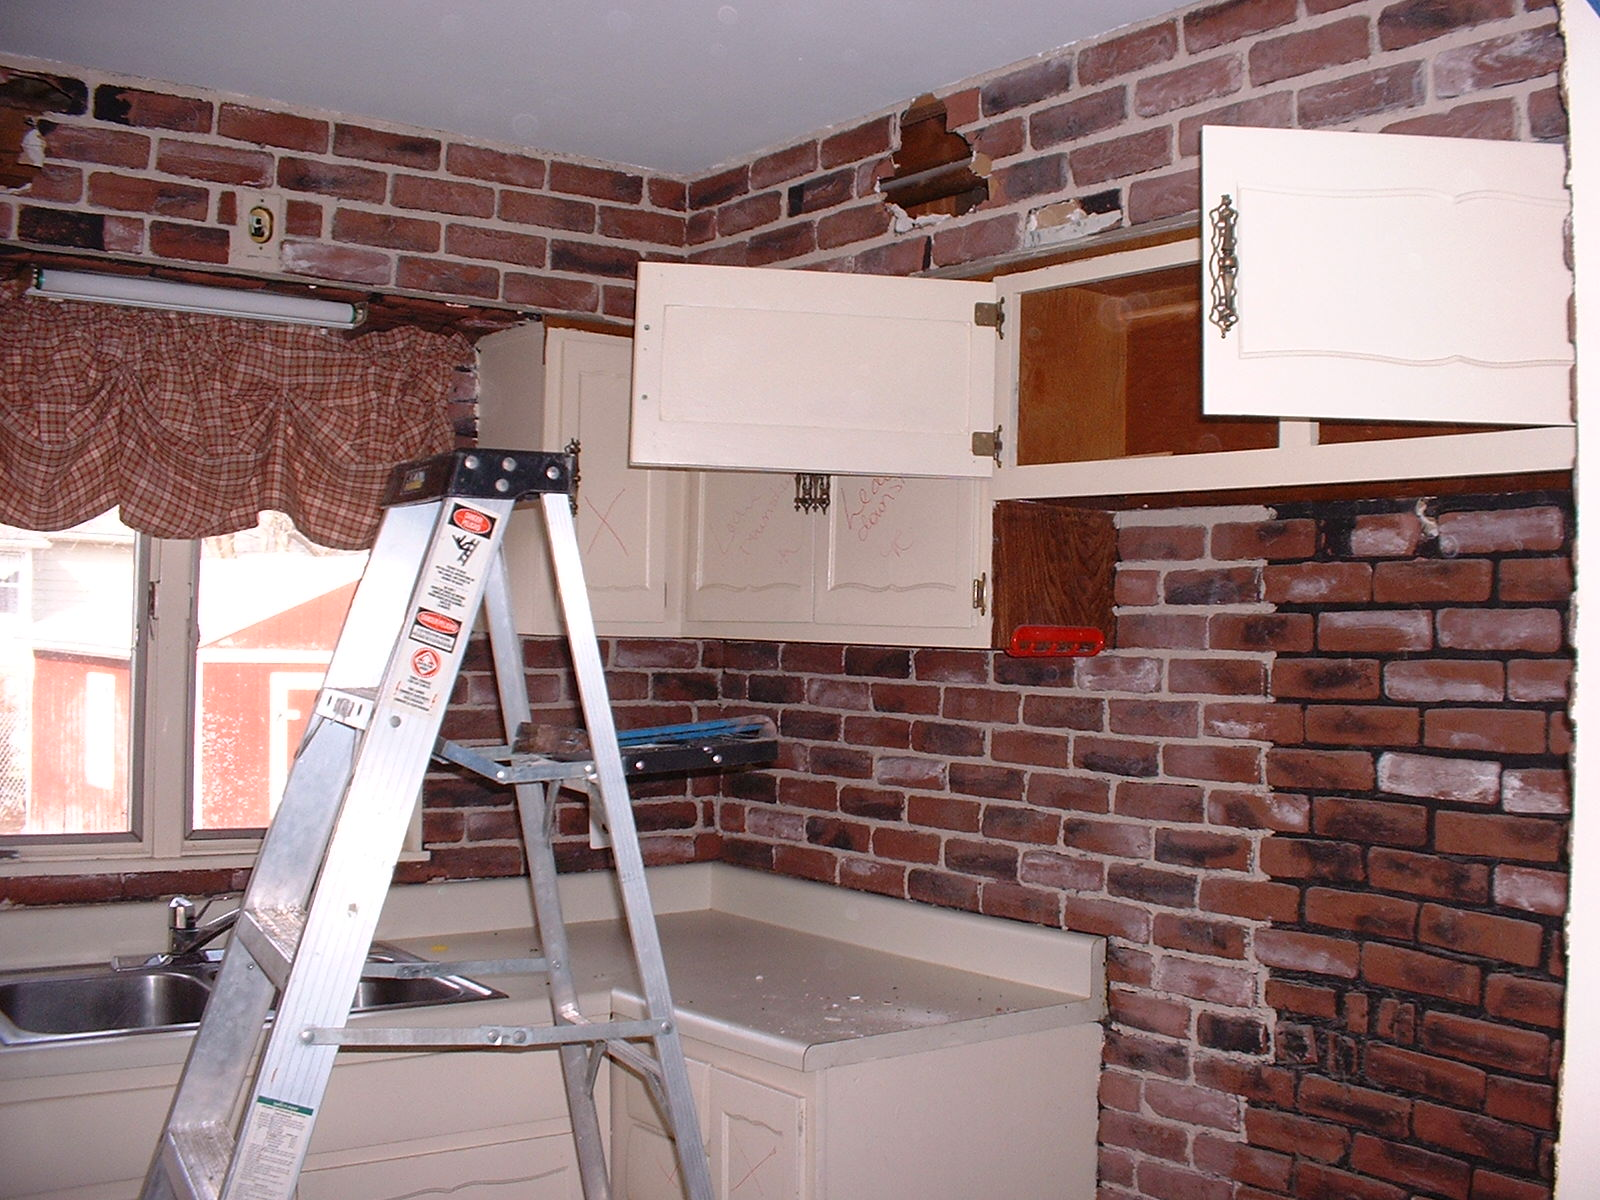 We have started to take the old cabinets down. Nice brick...huh?